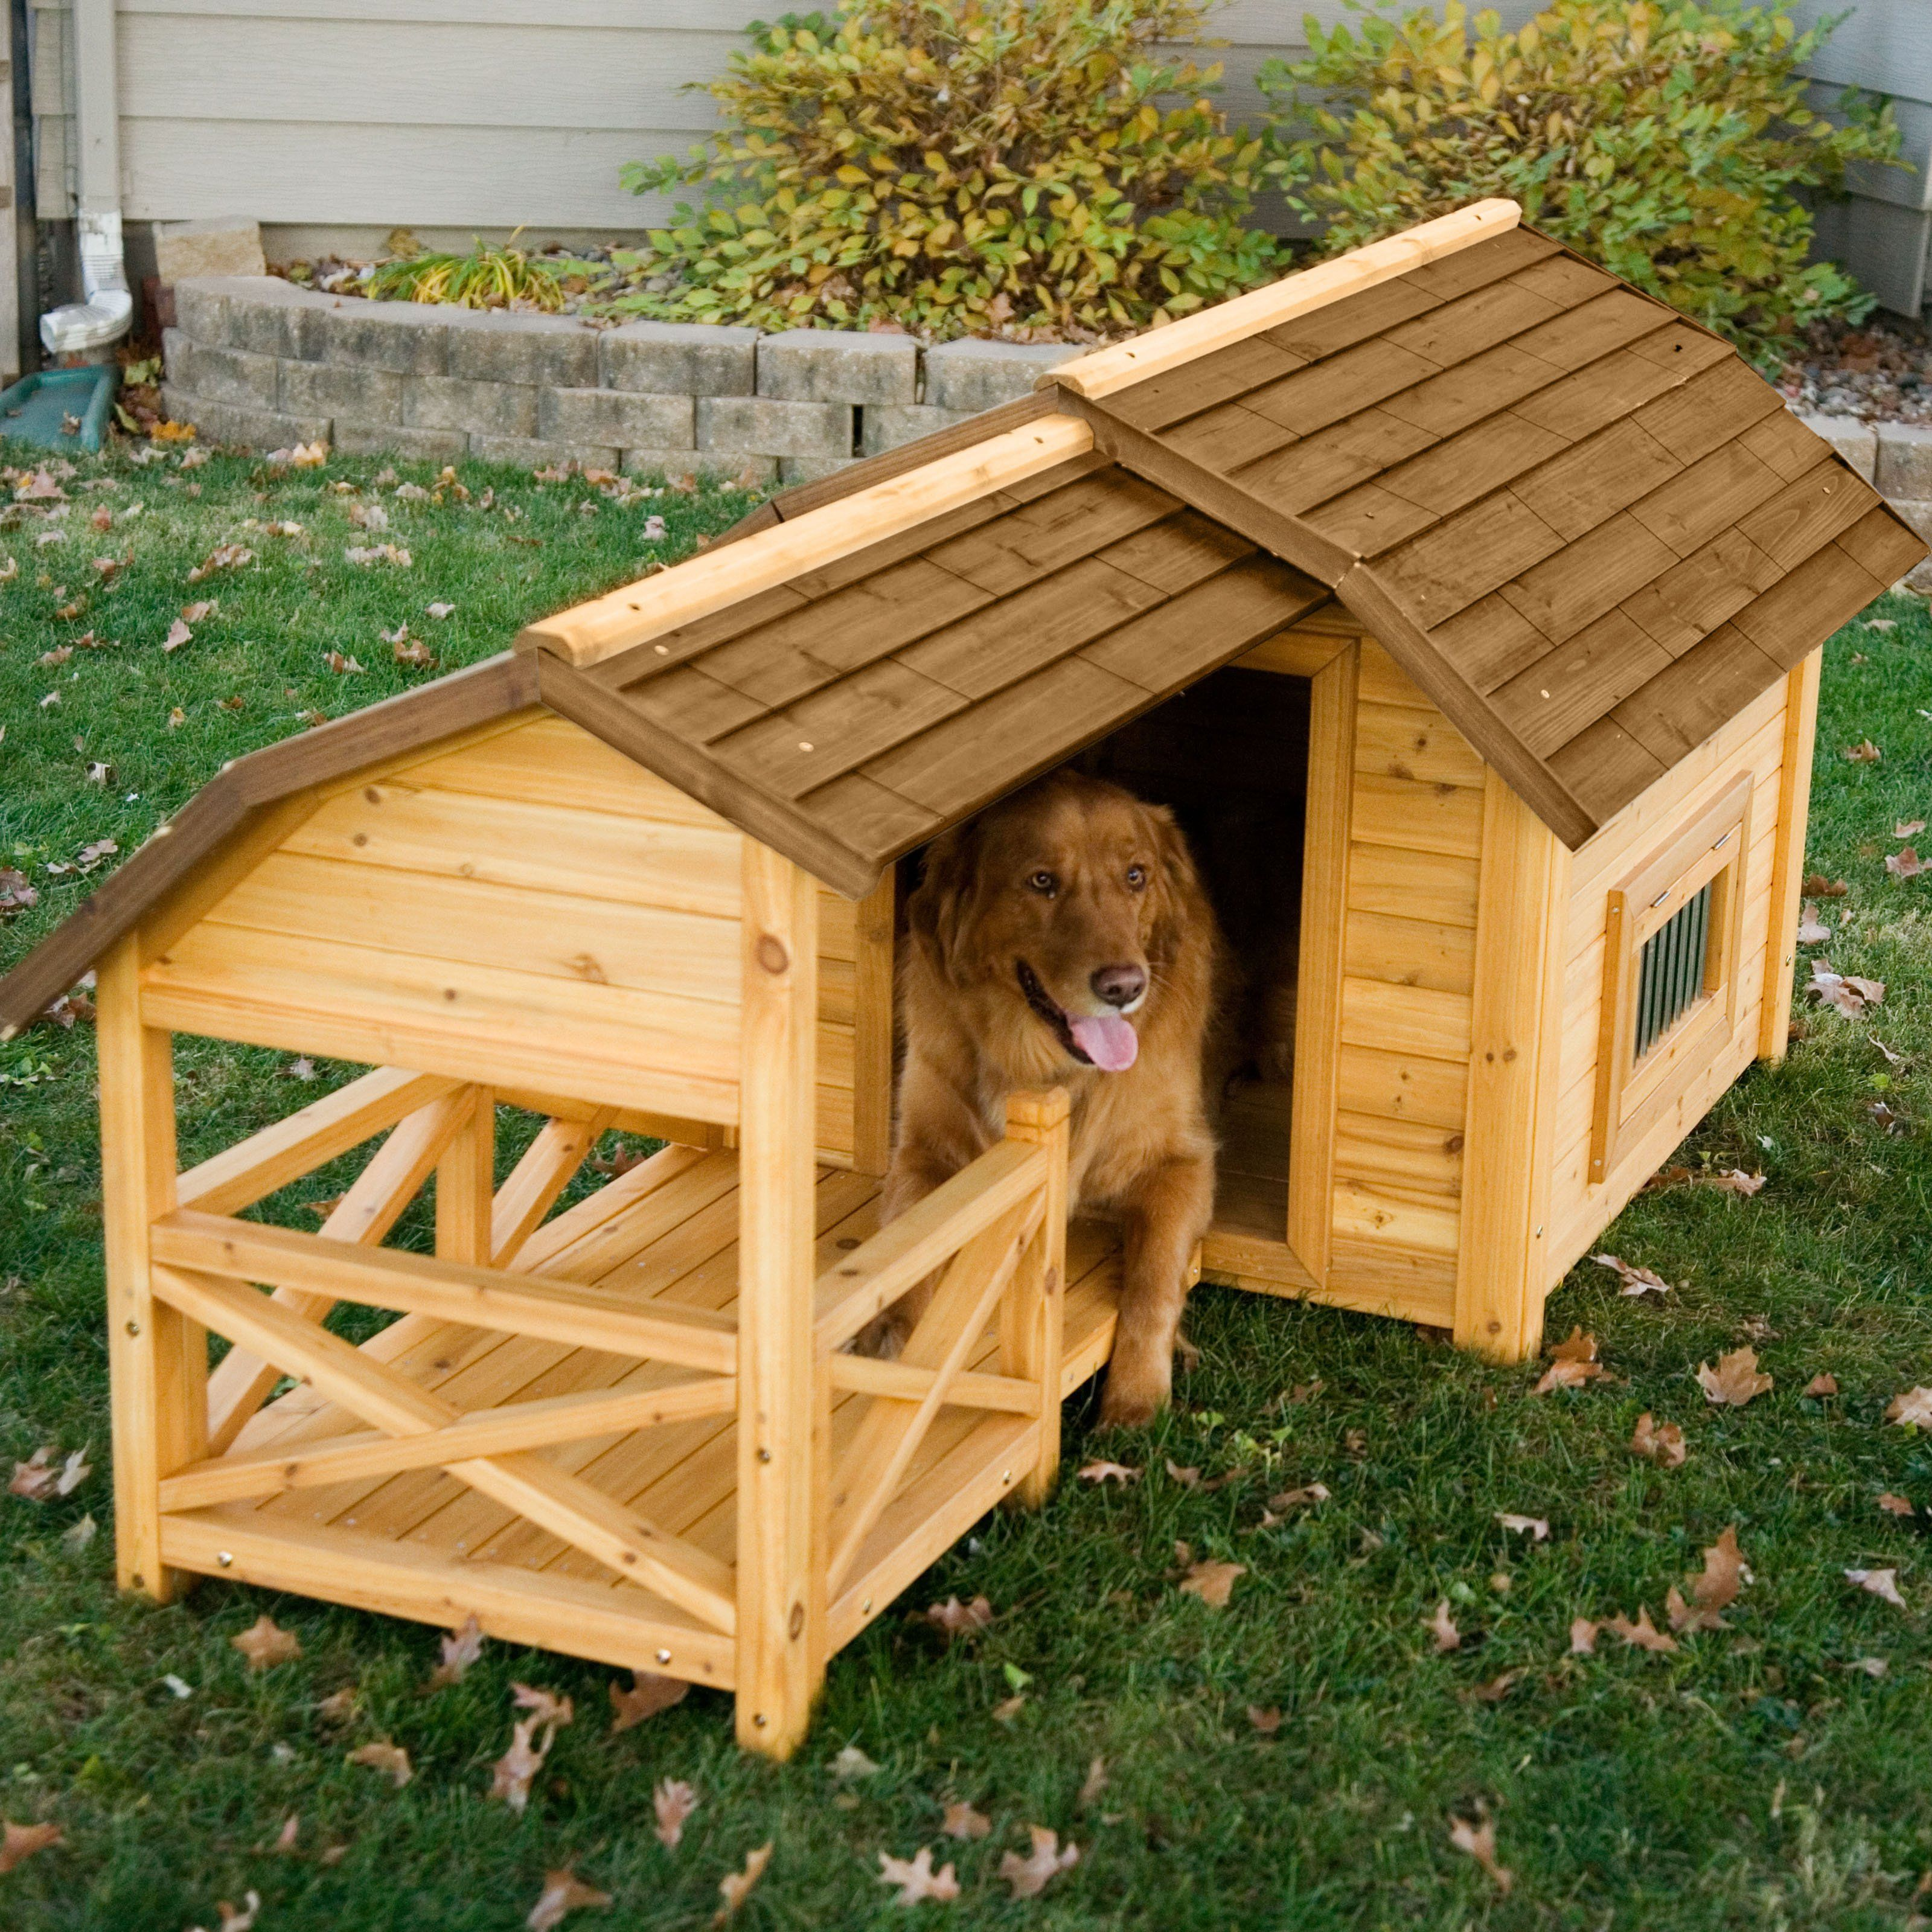 Boomer George Wooden Barn Dog House With Images Large Dog House Wood Dog House Dog House Plans